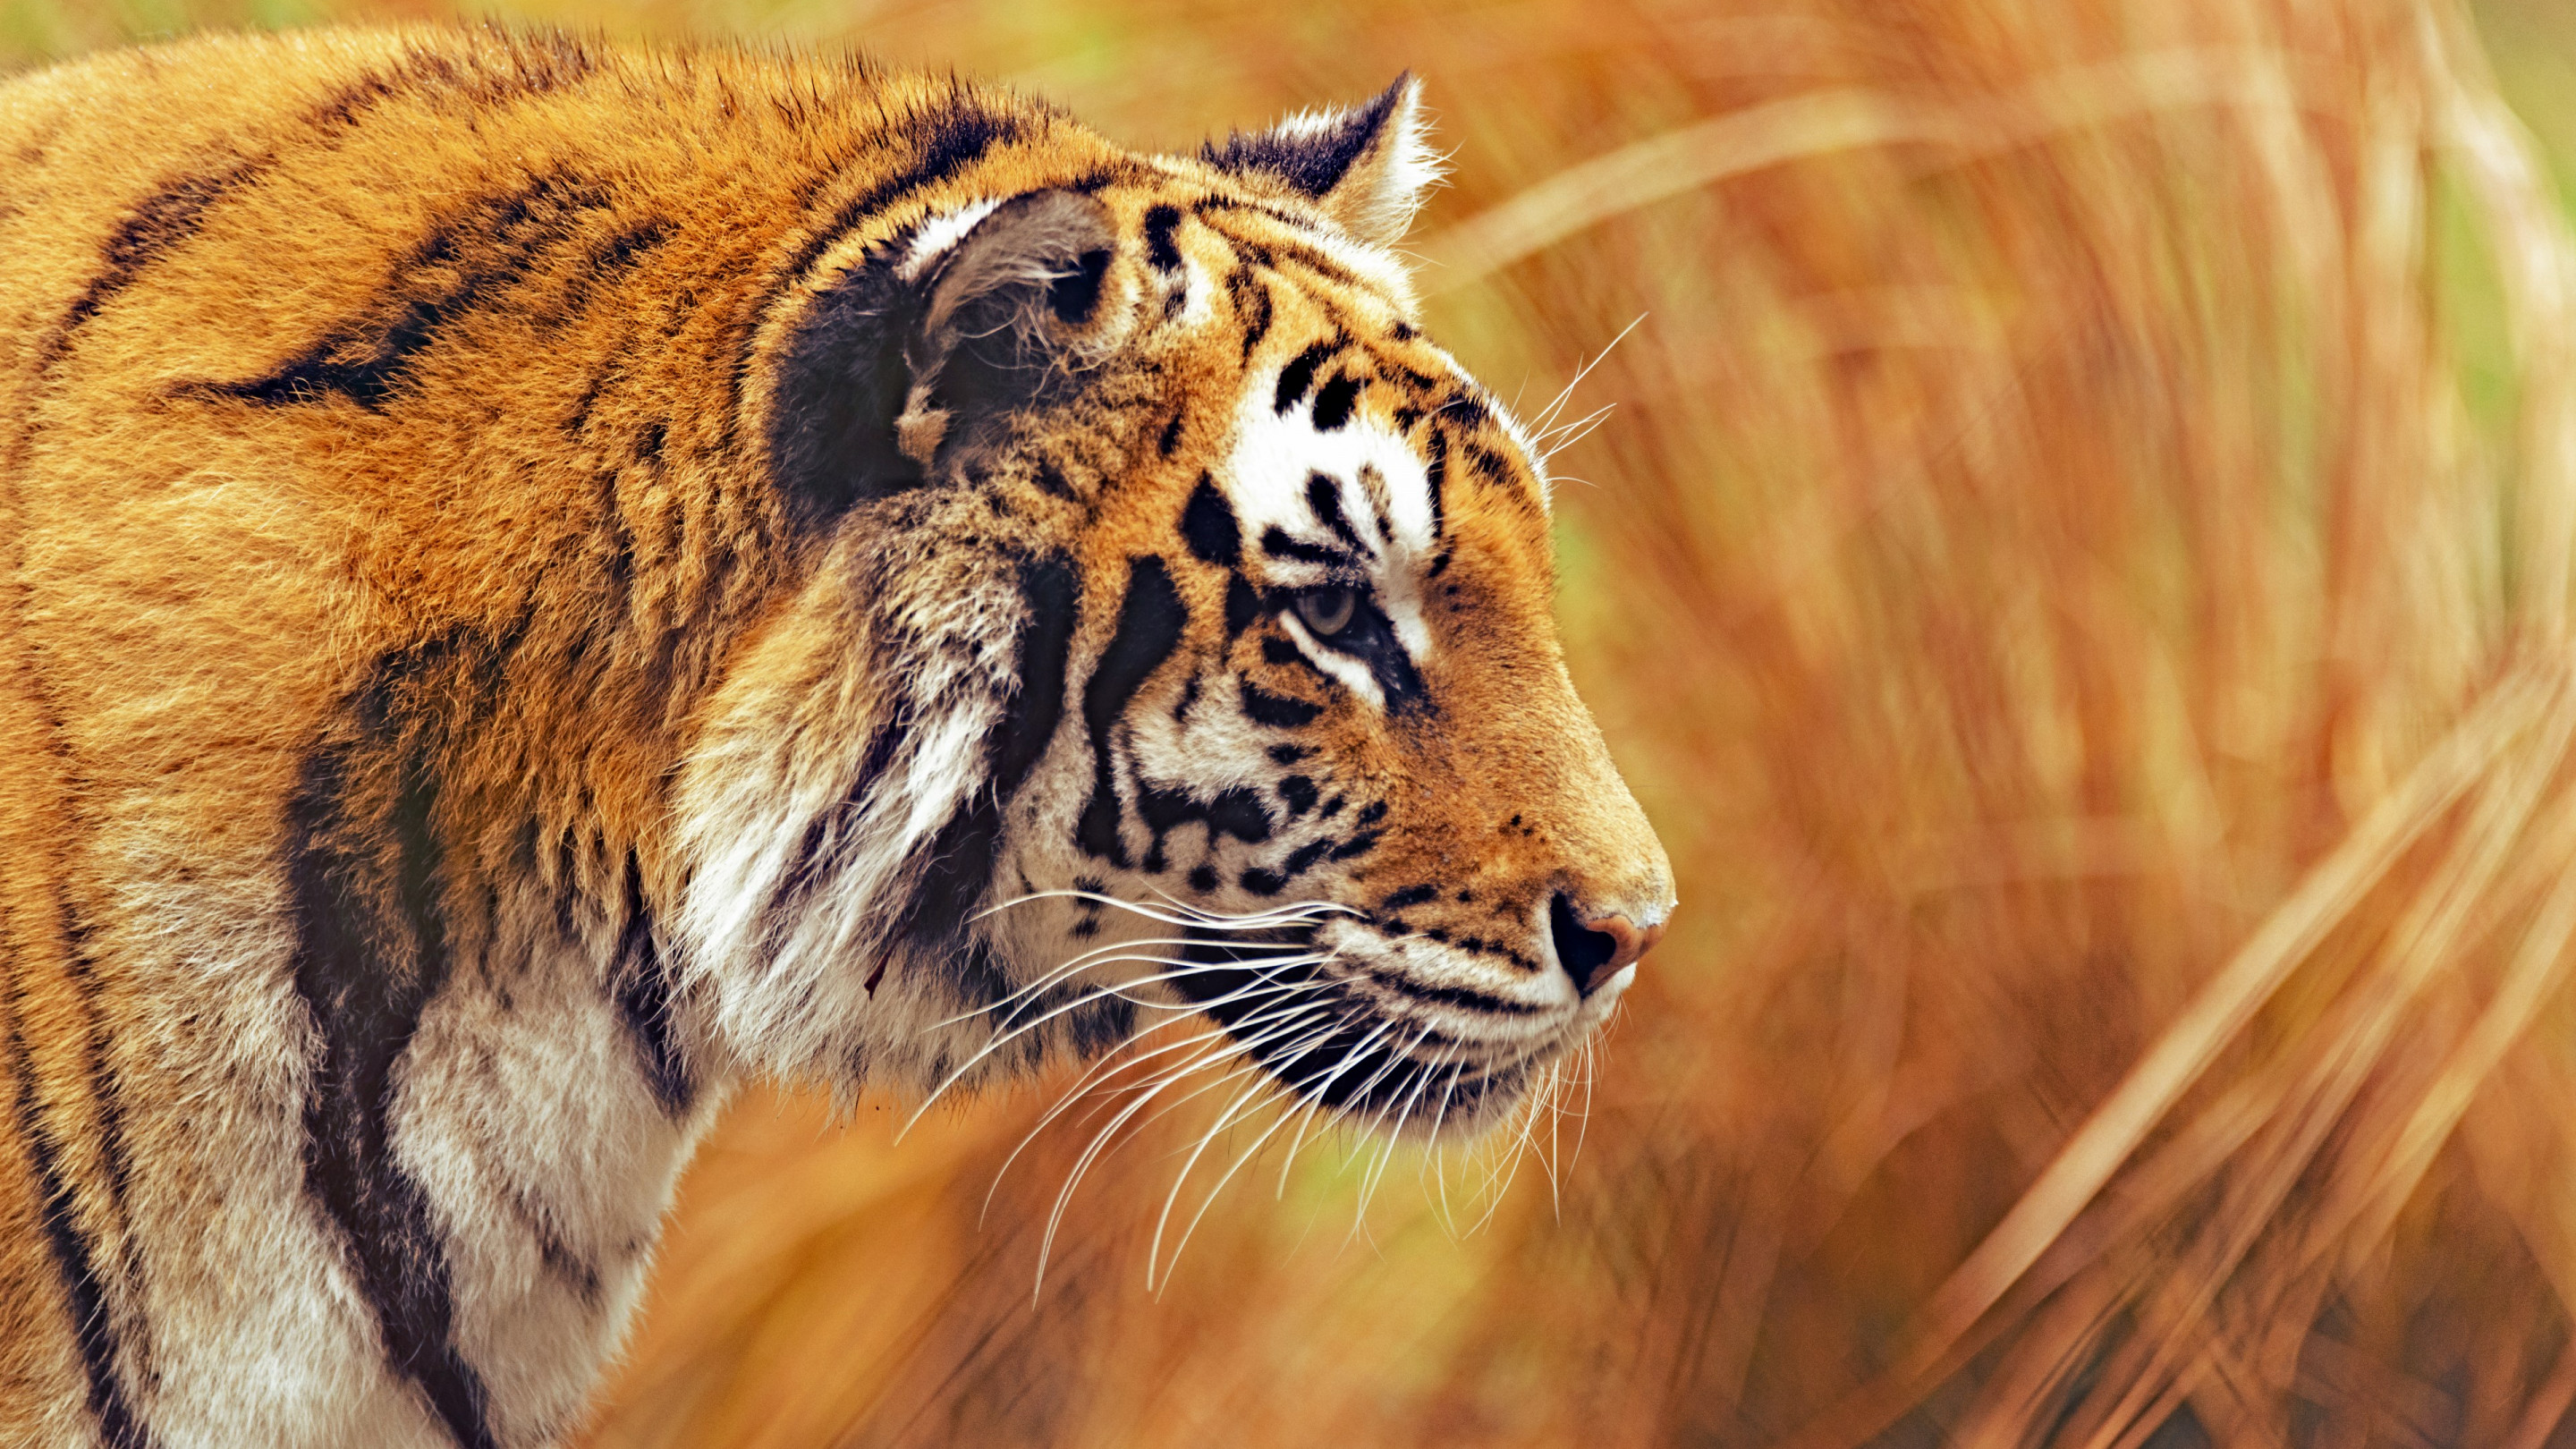 Bengal tiger wallpaper 2880x1620